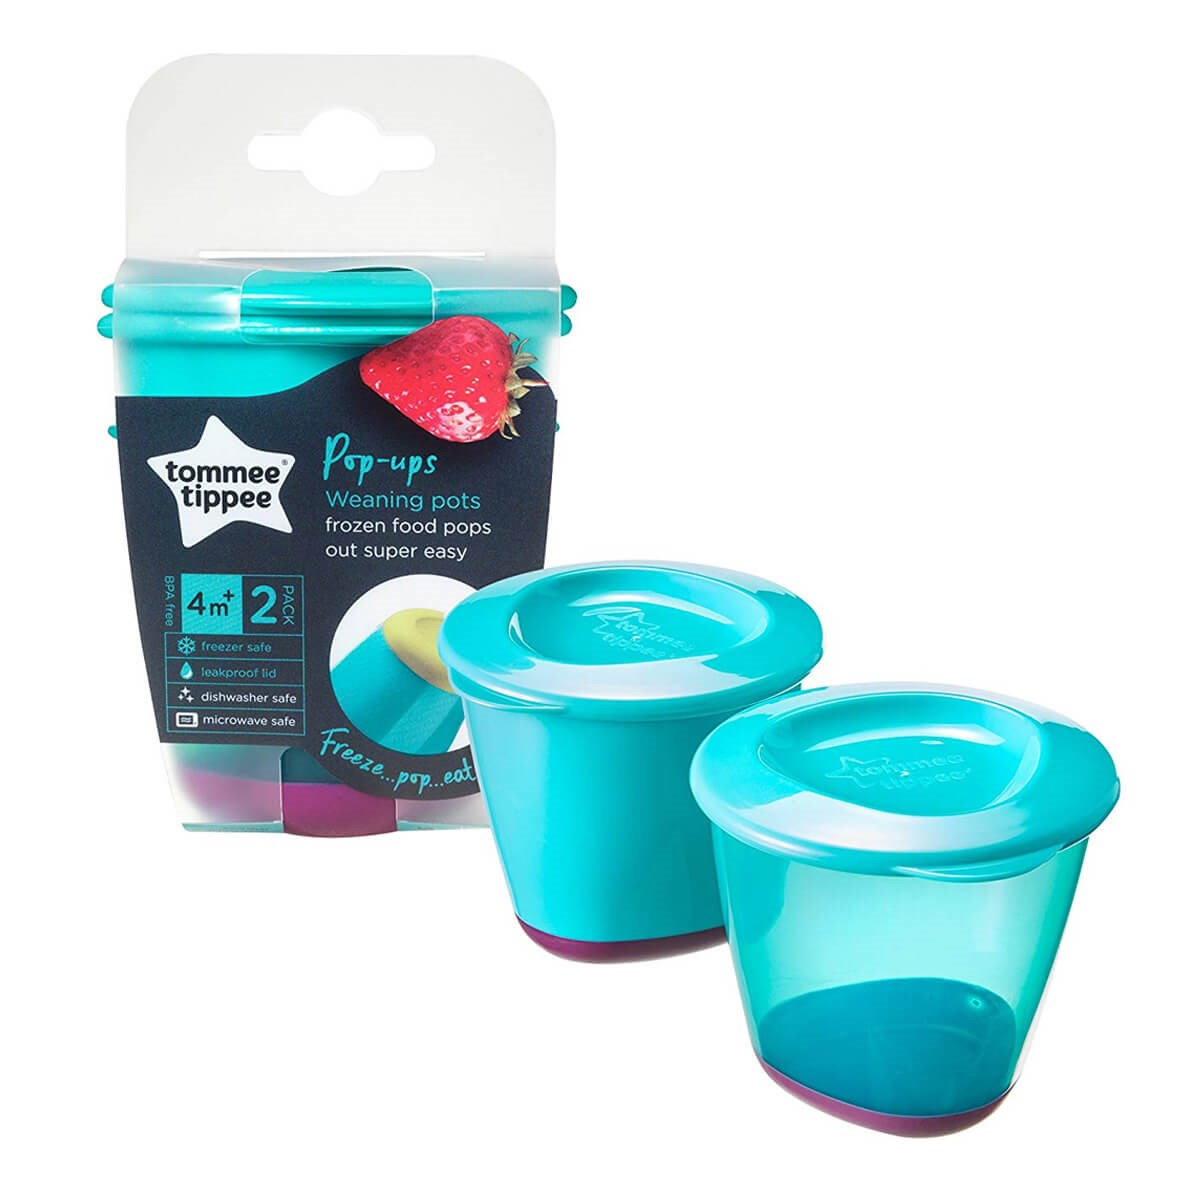 Tommee Tippee Pop-Ups 2 Weaning Pots (4m+)